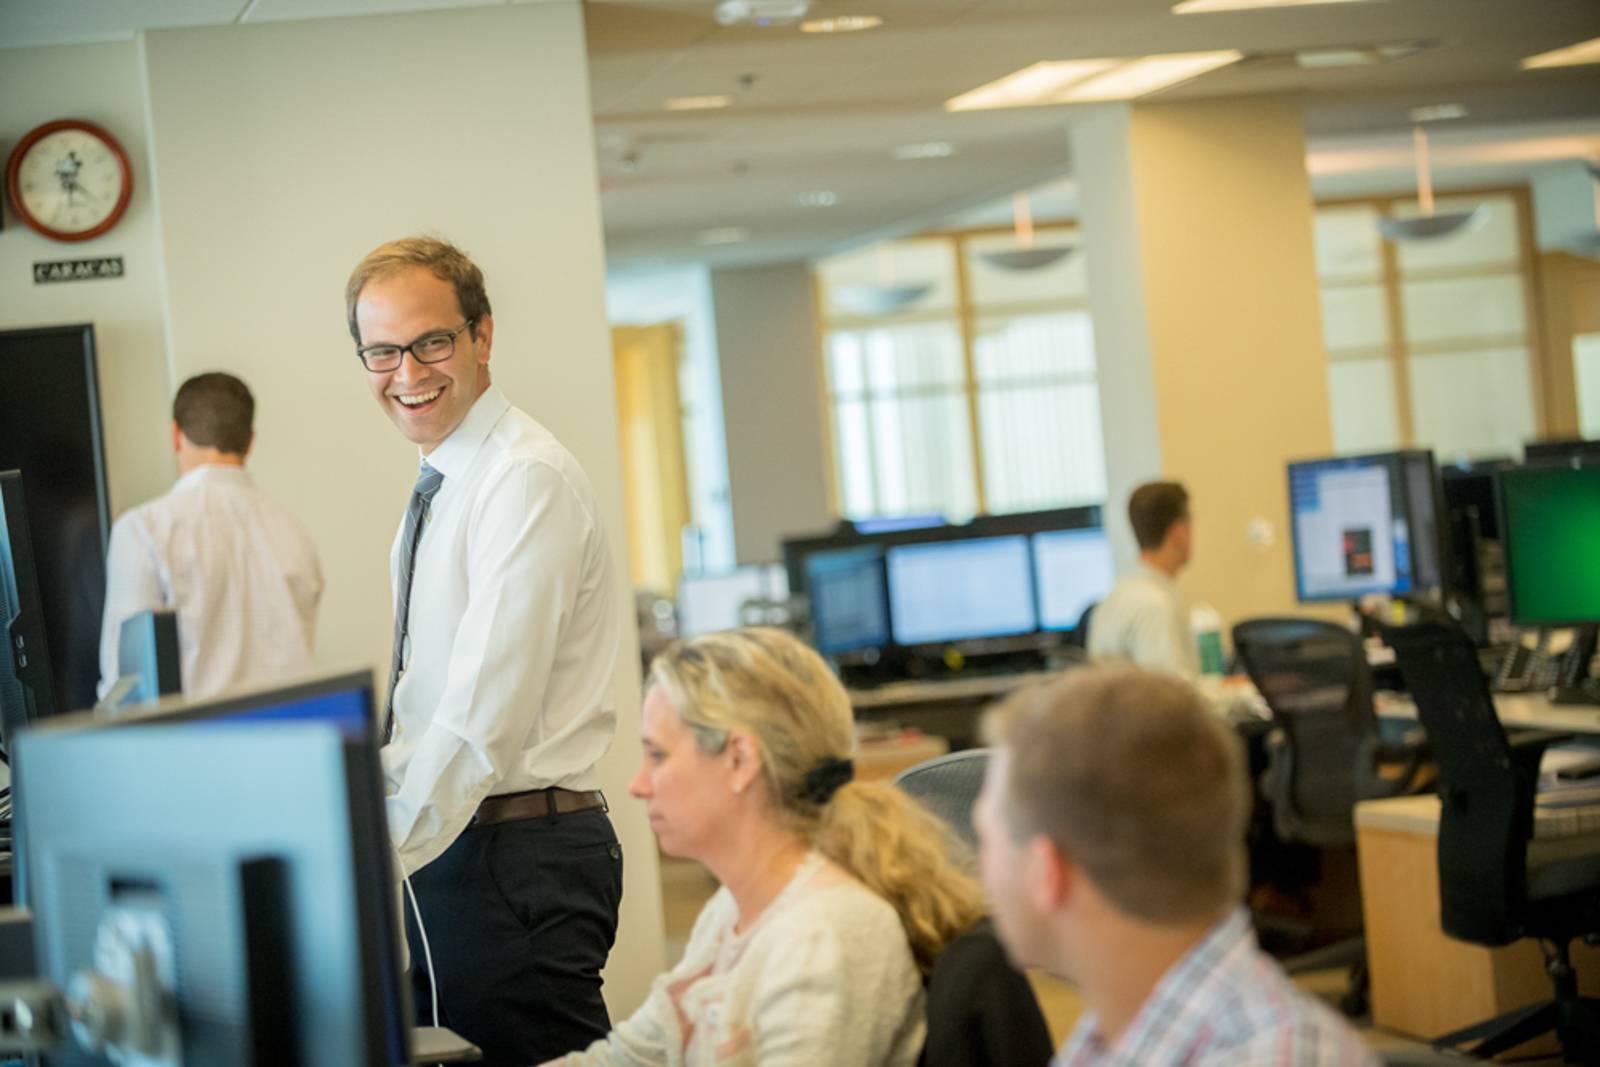 Candid office culture scene, two people sit in the foreground, a man stands smiling in focus